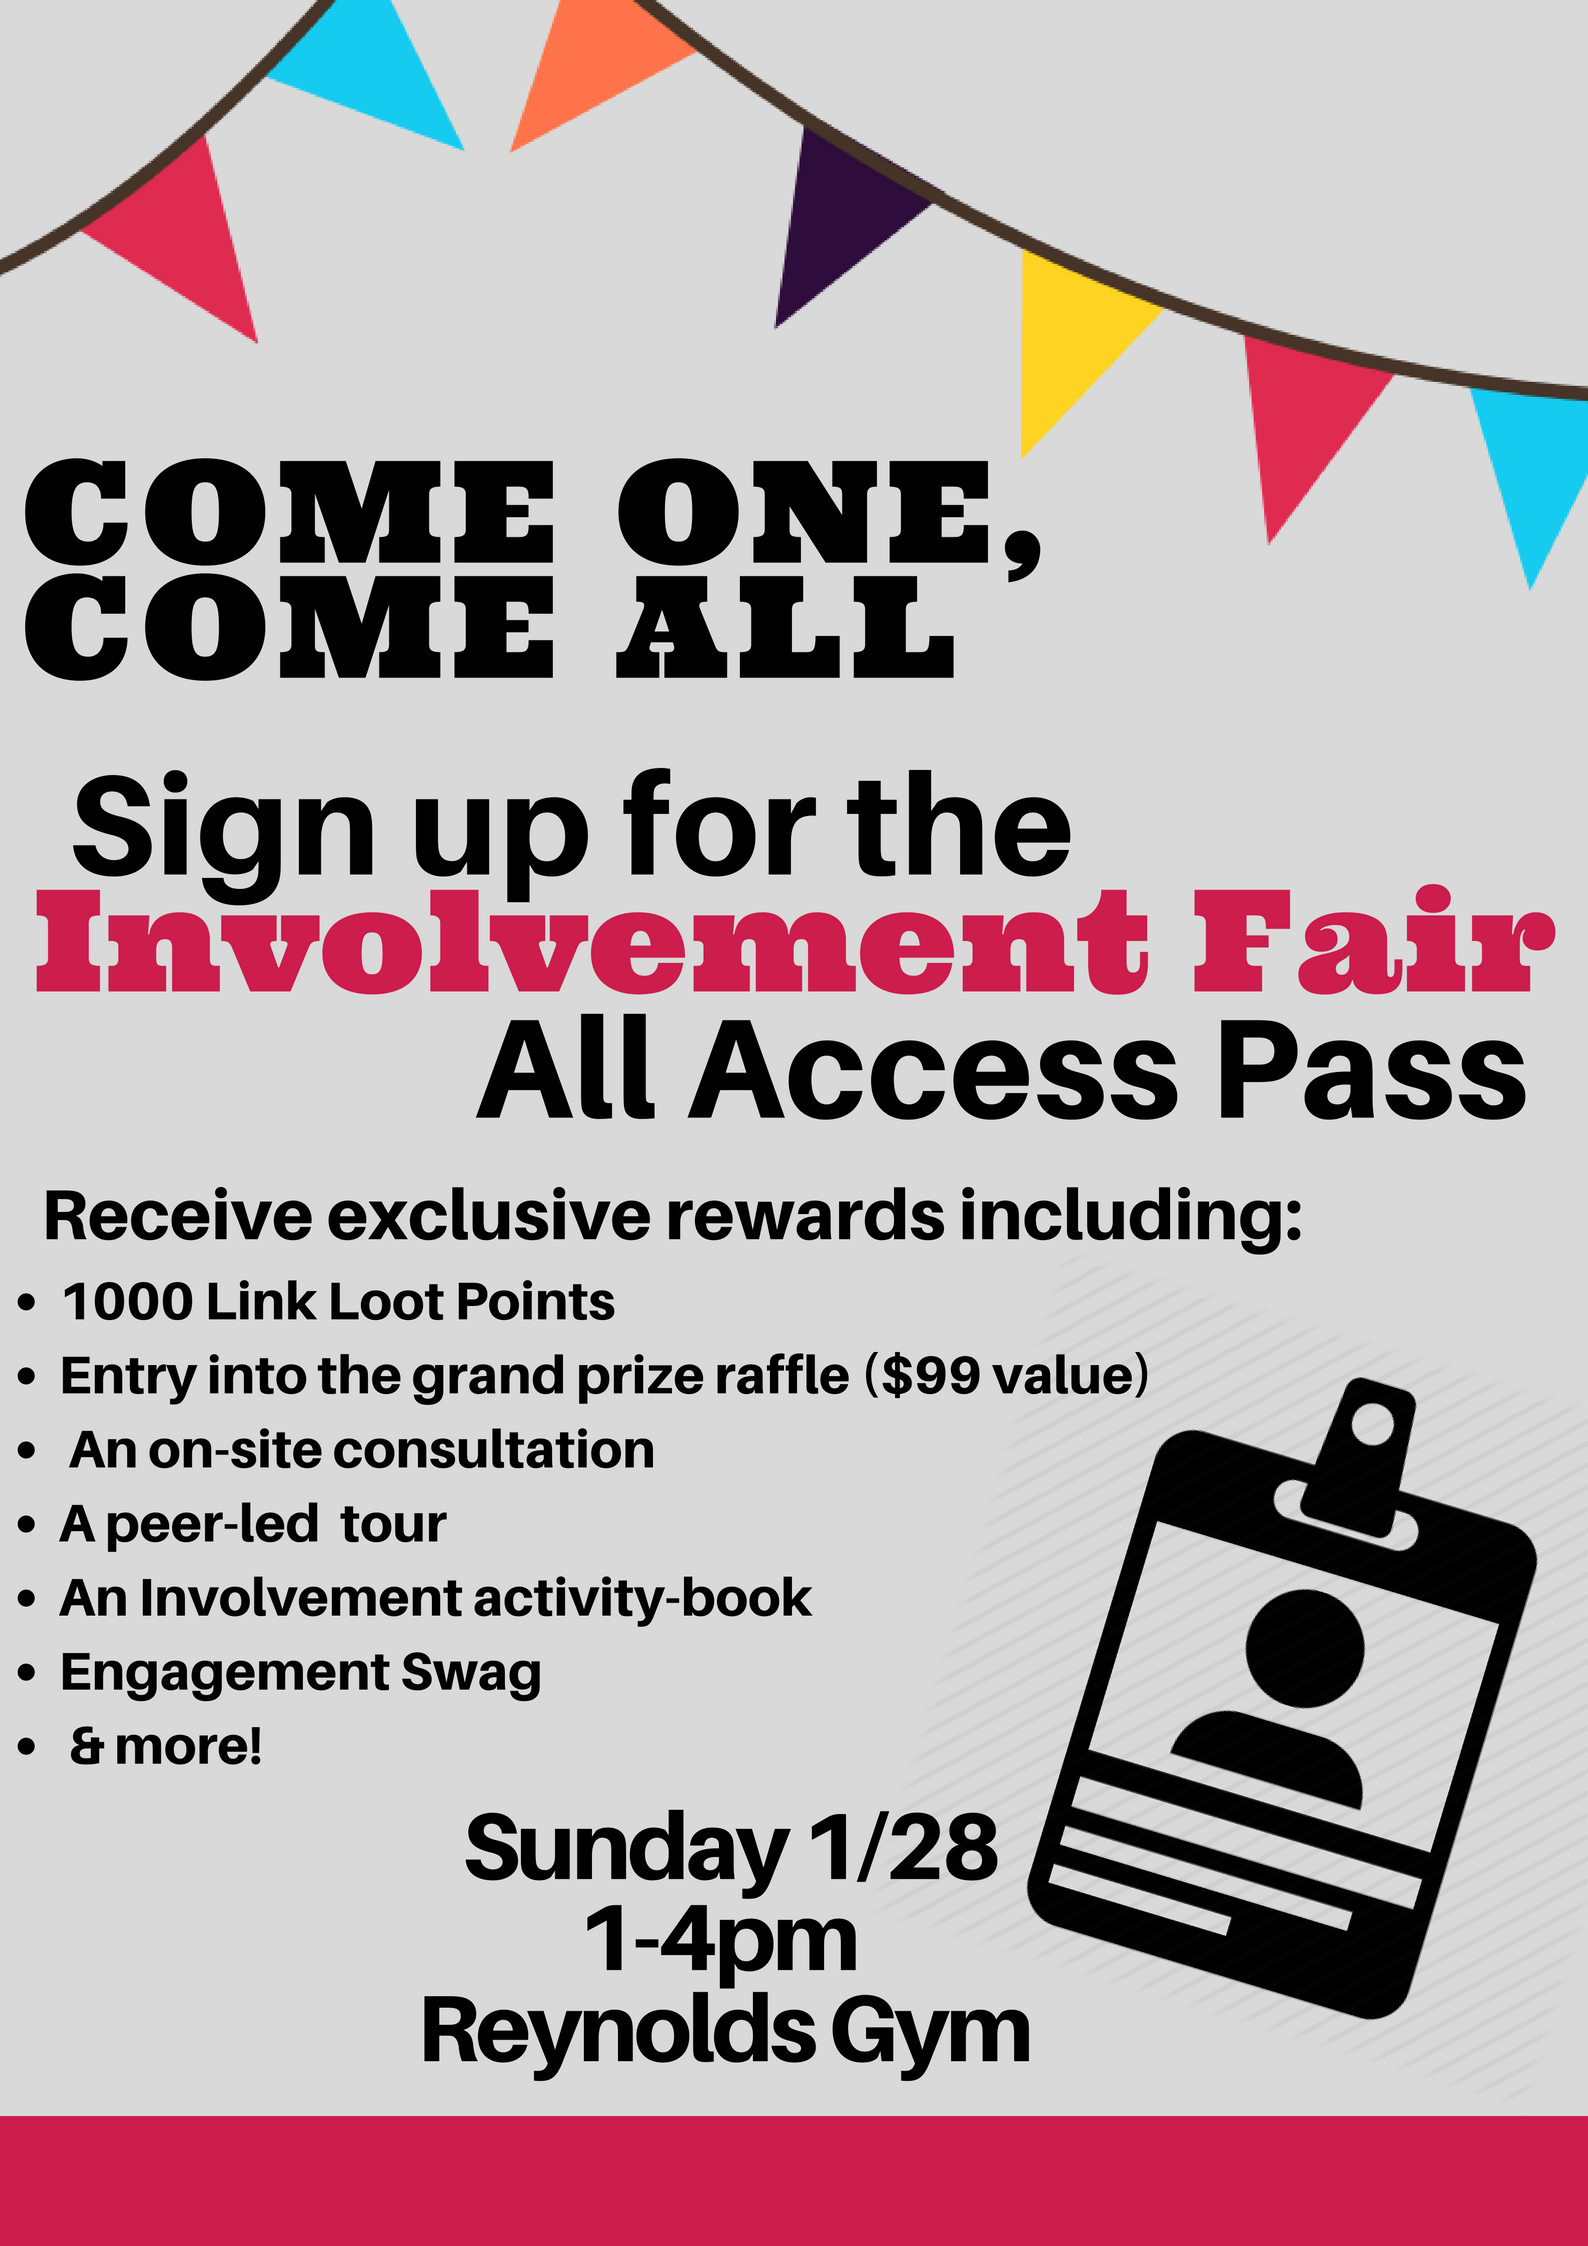 Student Involvement Fair 2018 All Access Pass is a great way to find your place on campus!